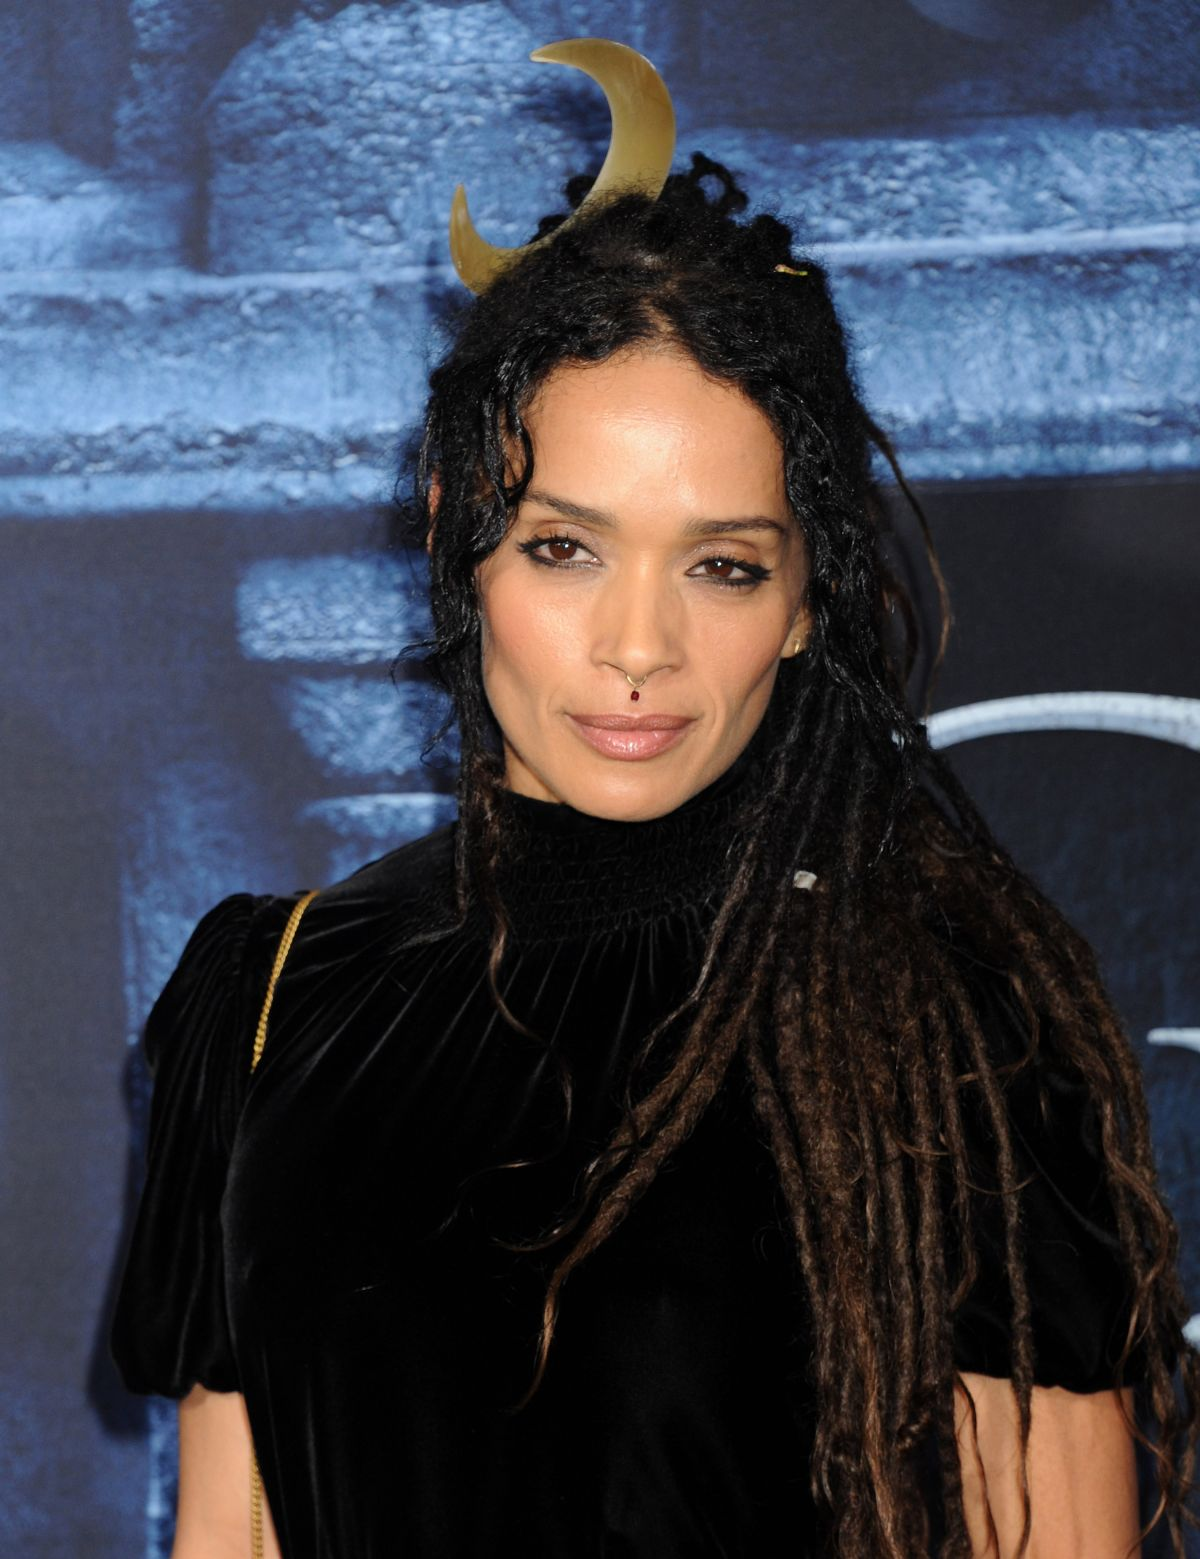 Best Wallpapers For Iphone 7 Lisa Bonet Wallpapers High Quality Download Free